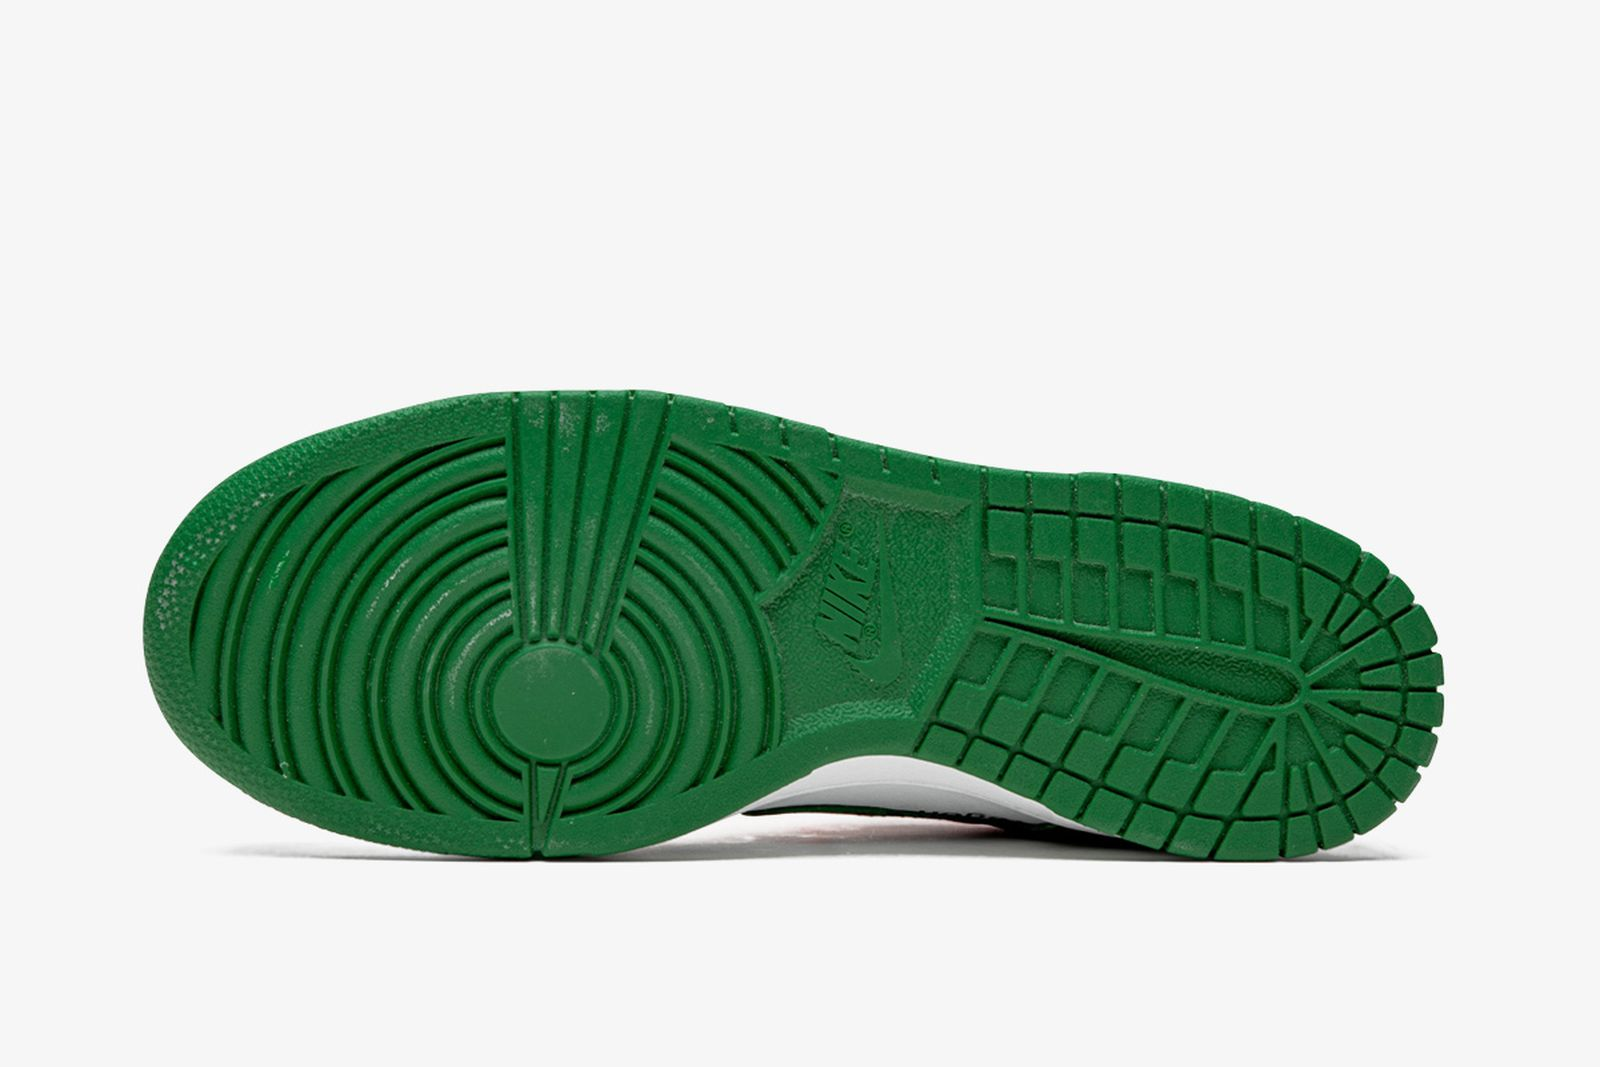 off-white-nike-dunk-low-green-release-date-price-sg-04